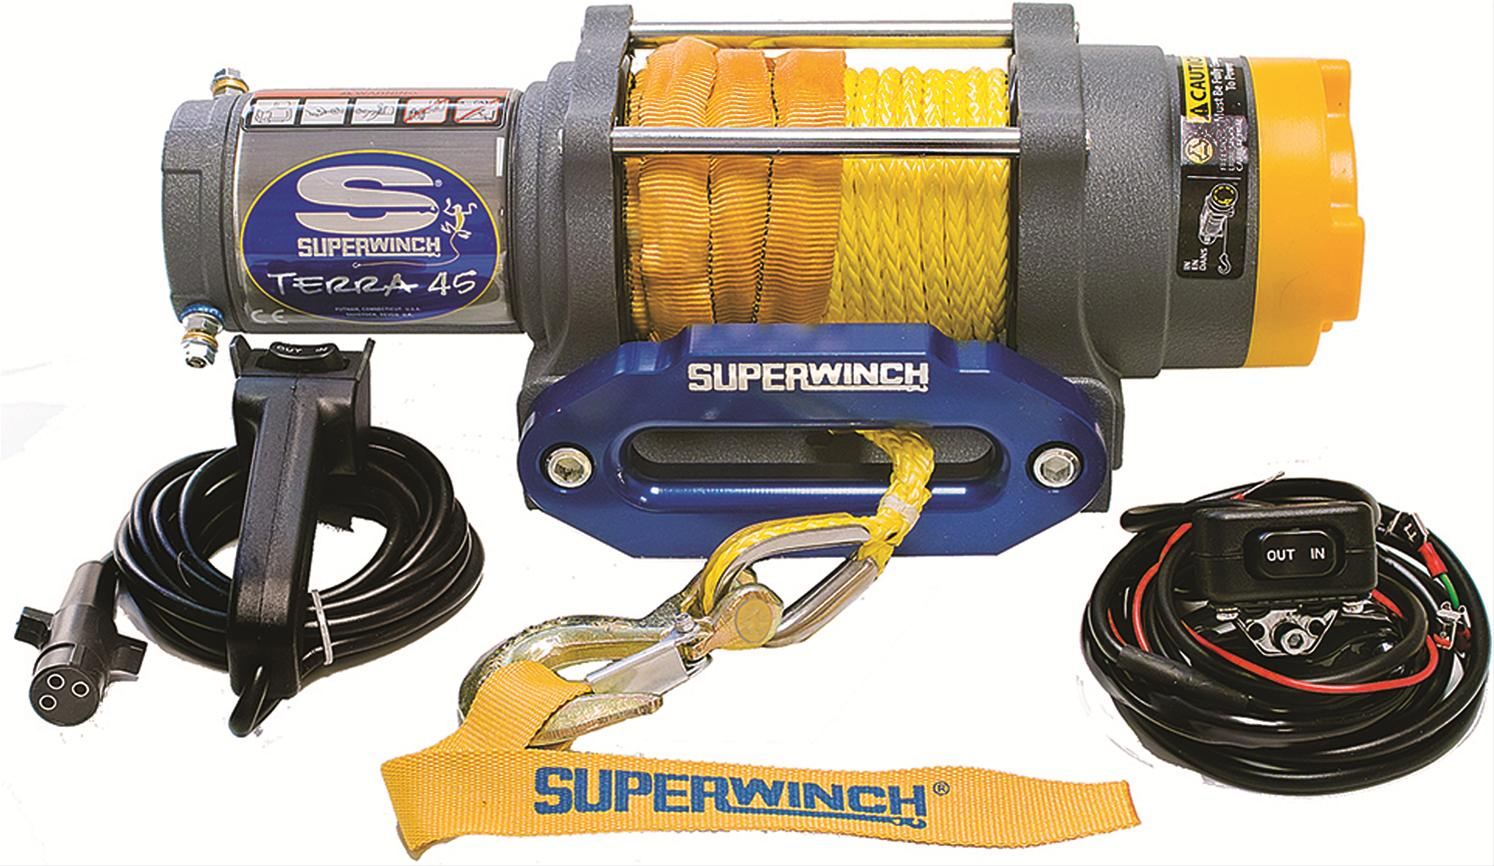 hight resolution of superwinch terra 45 sr atv winches 1145230 free shipping on orders over 99 at powersports place